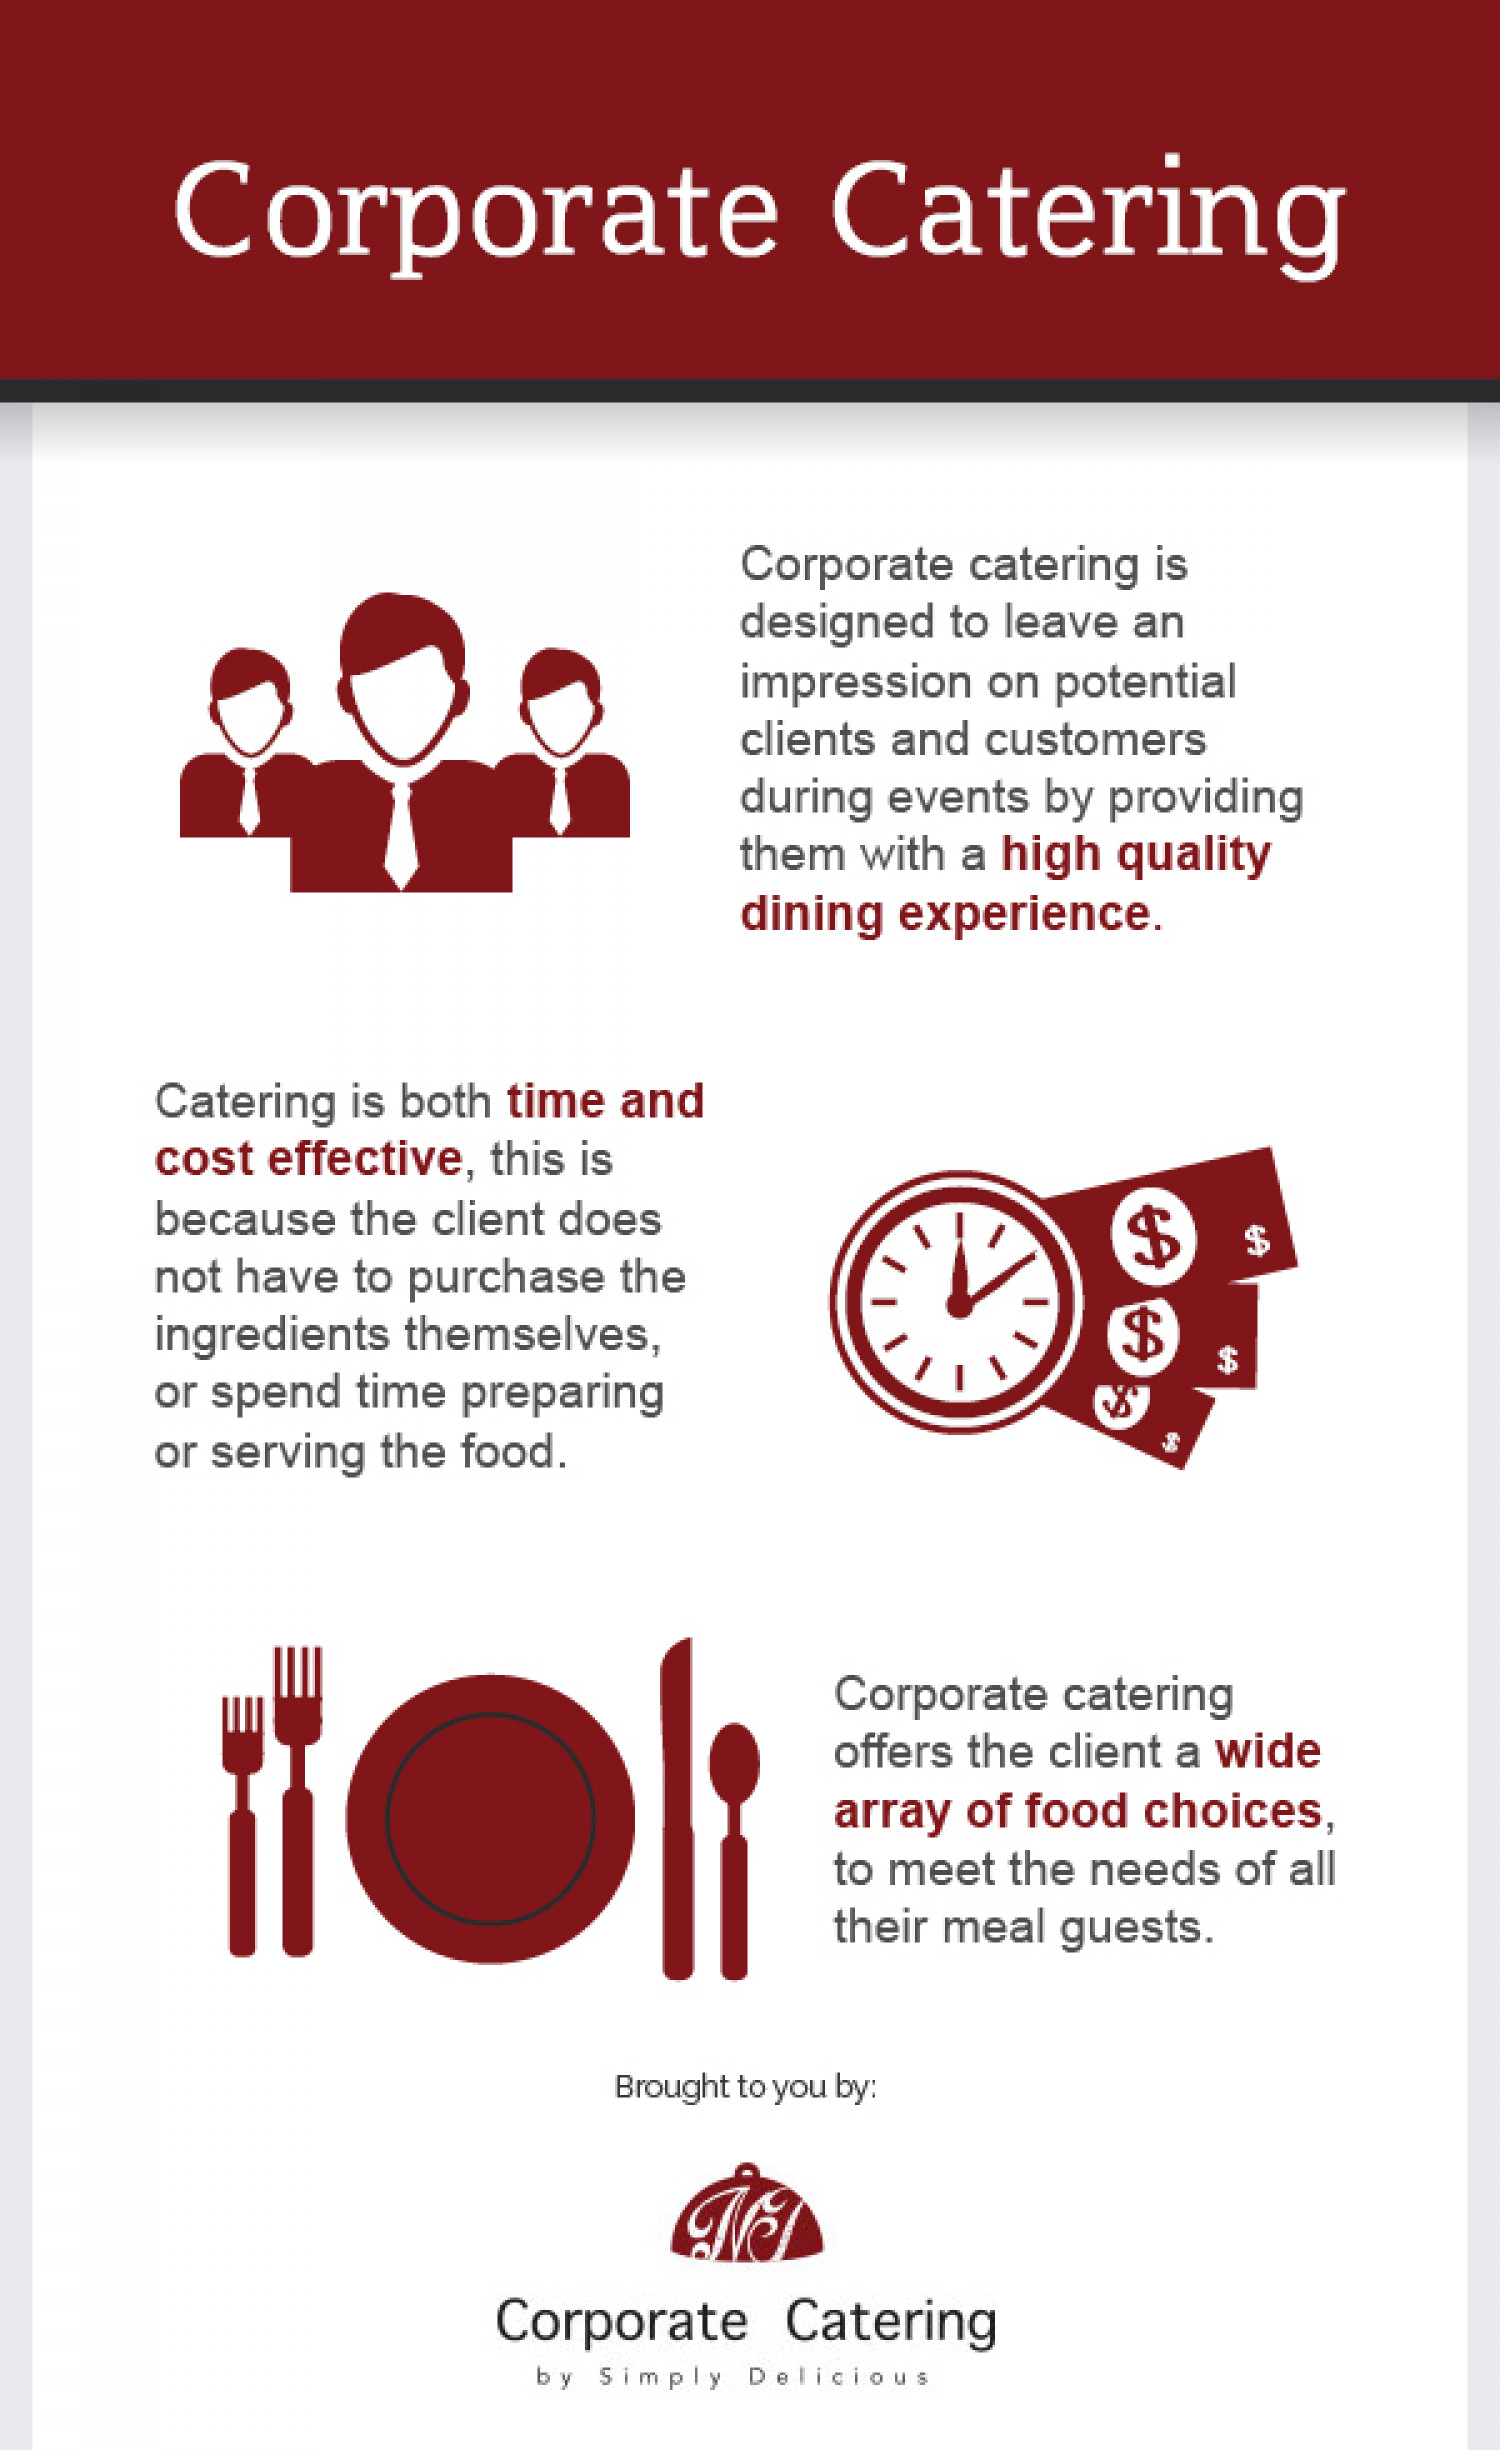 Corporate Catering Infographic